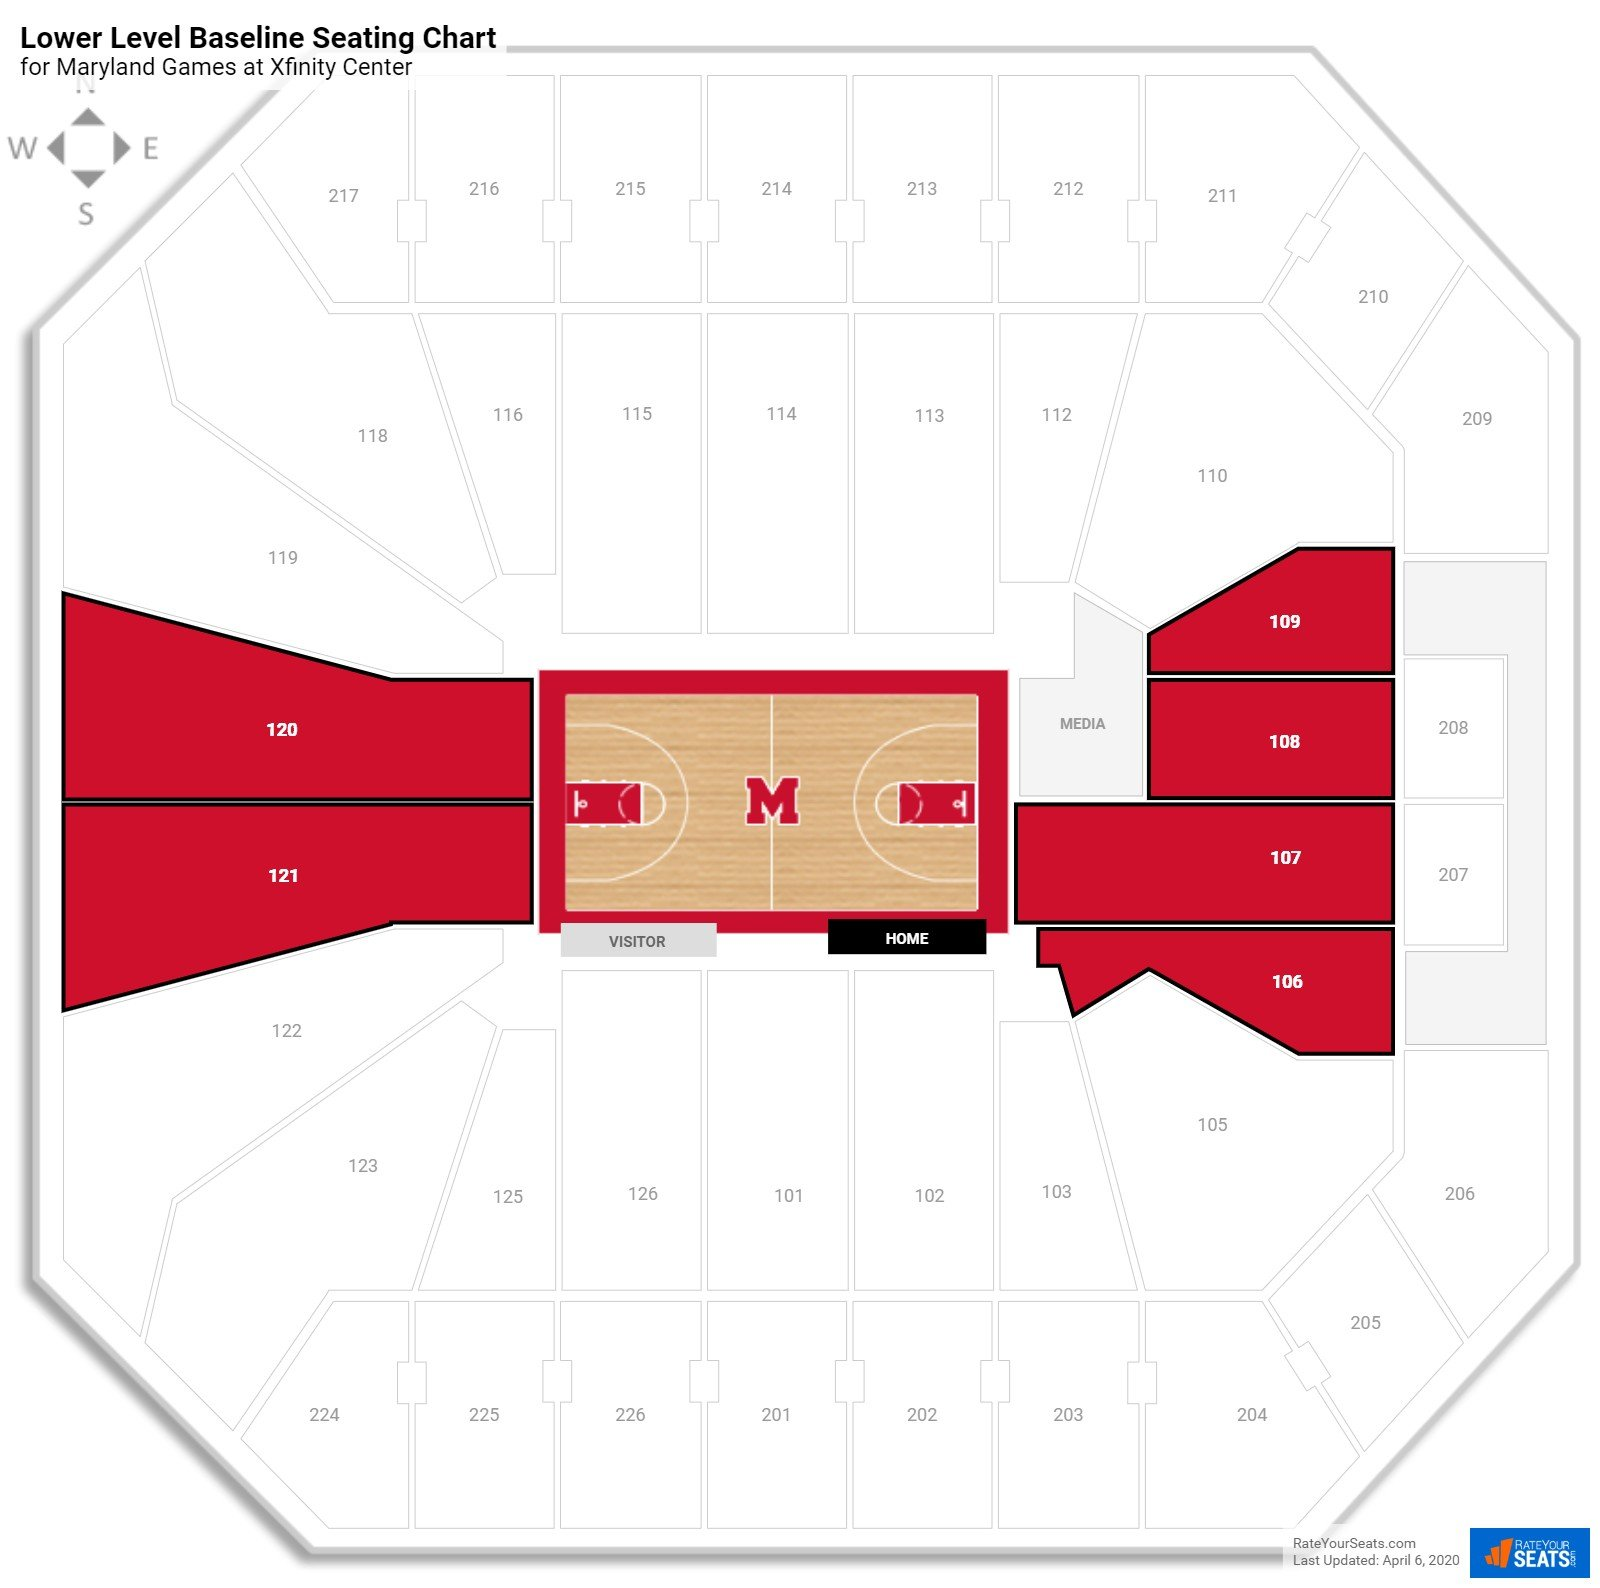 Comcast Center Lower Level Baseline Seating Chart